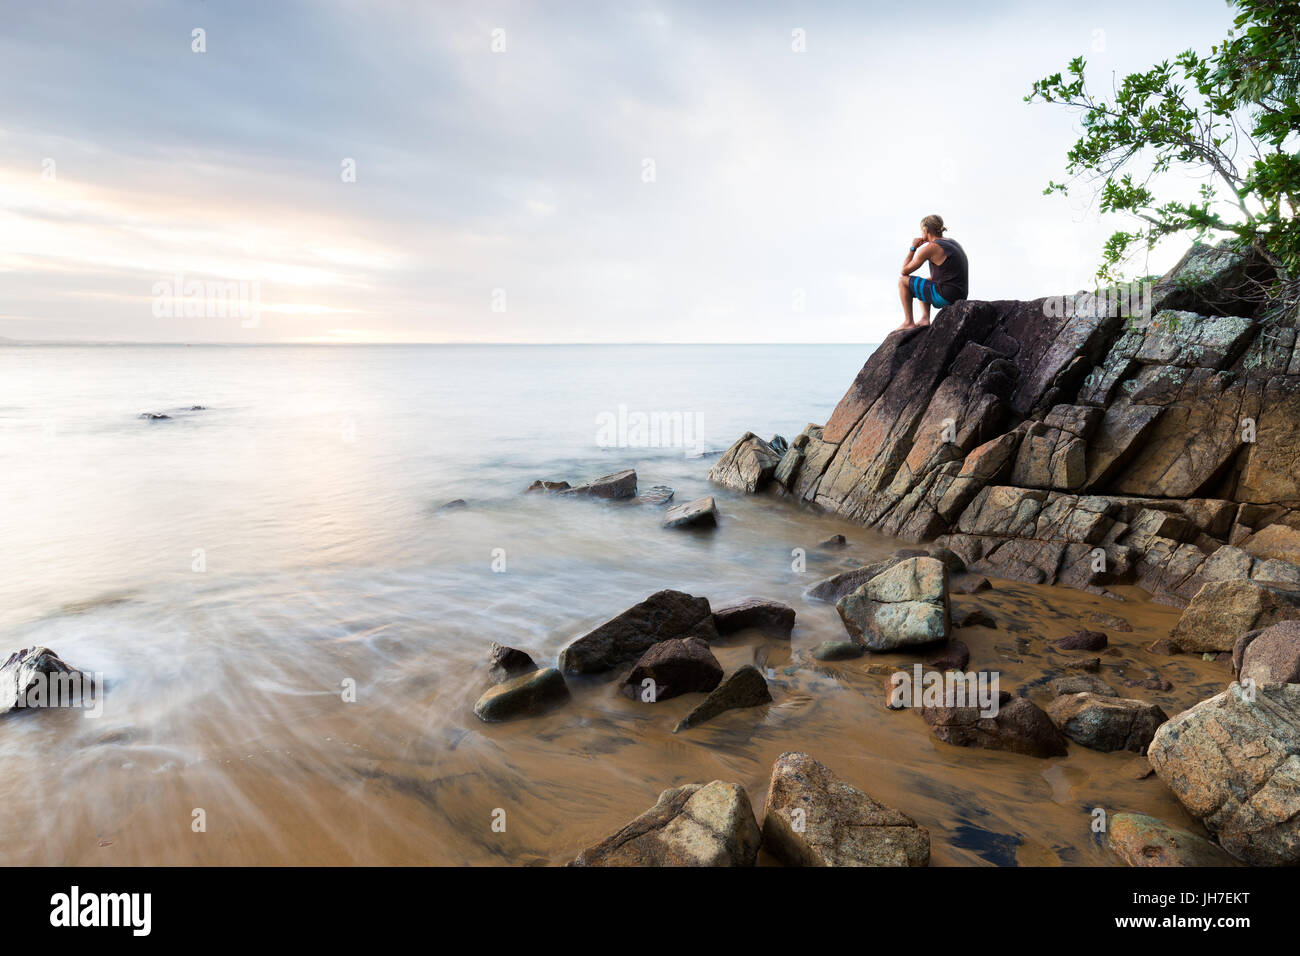 A man sits on a boulder in contemplation at a beautiful beach in a long exposure seascape scene. - Stock Image